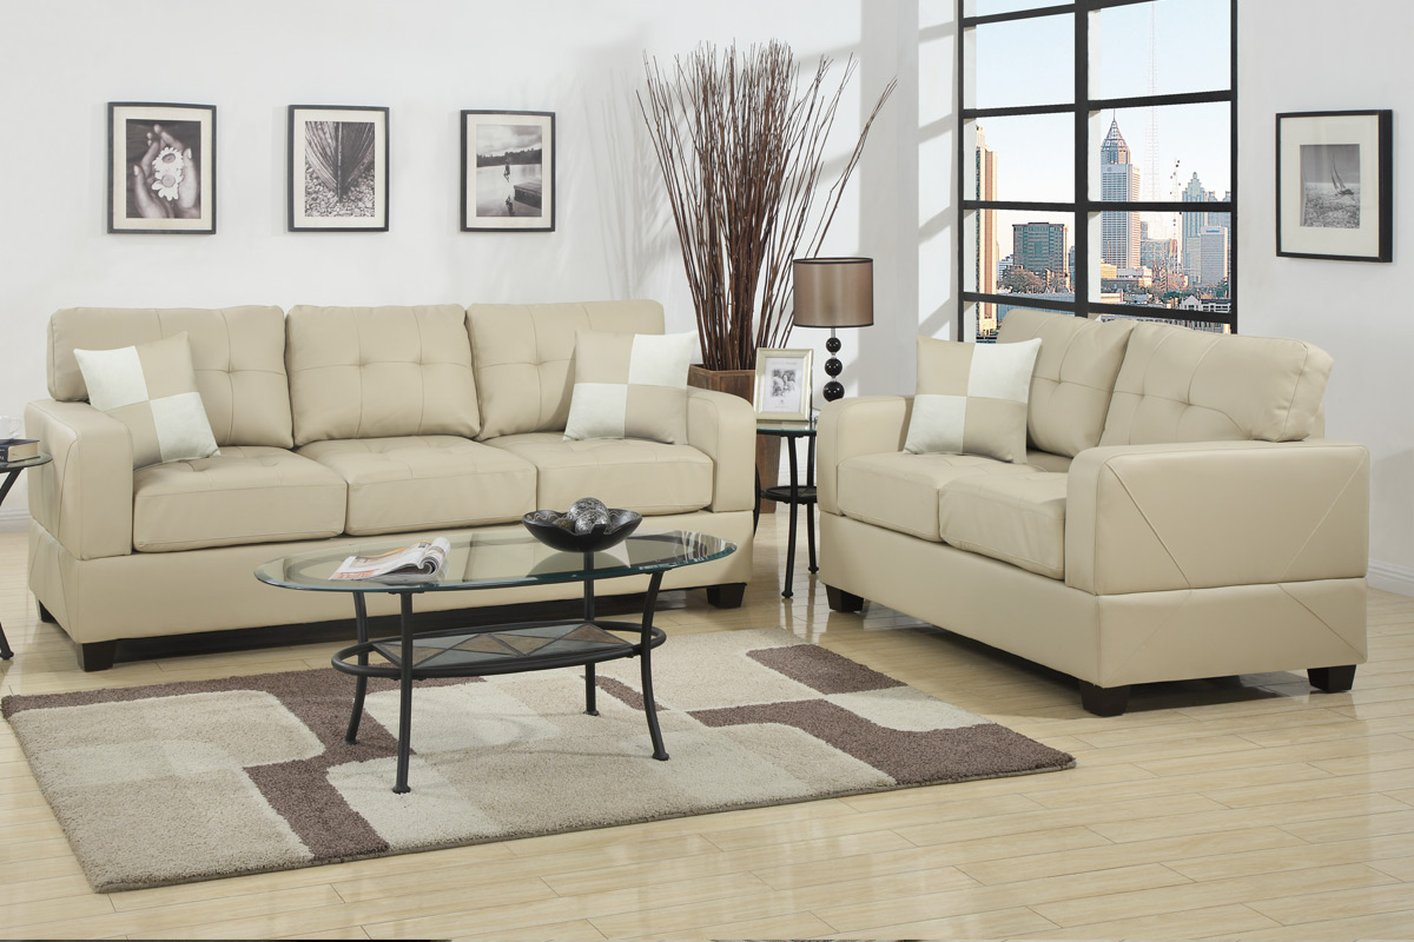 Poundex chase f7342 beige leather sofa and loveseat set steal a sofa furniture outlet los Couches and loveseats